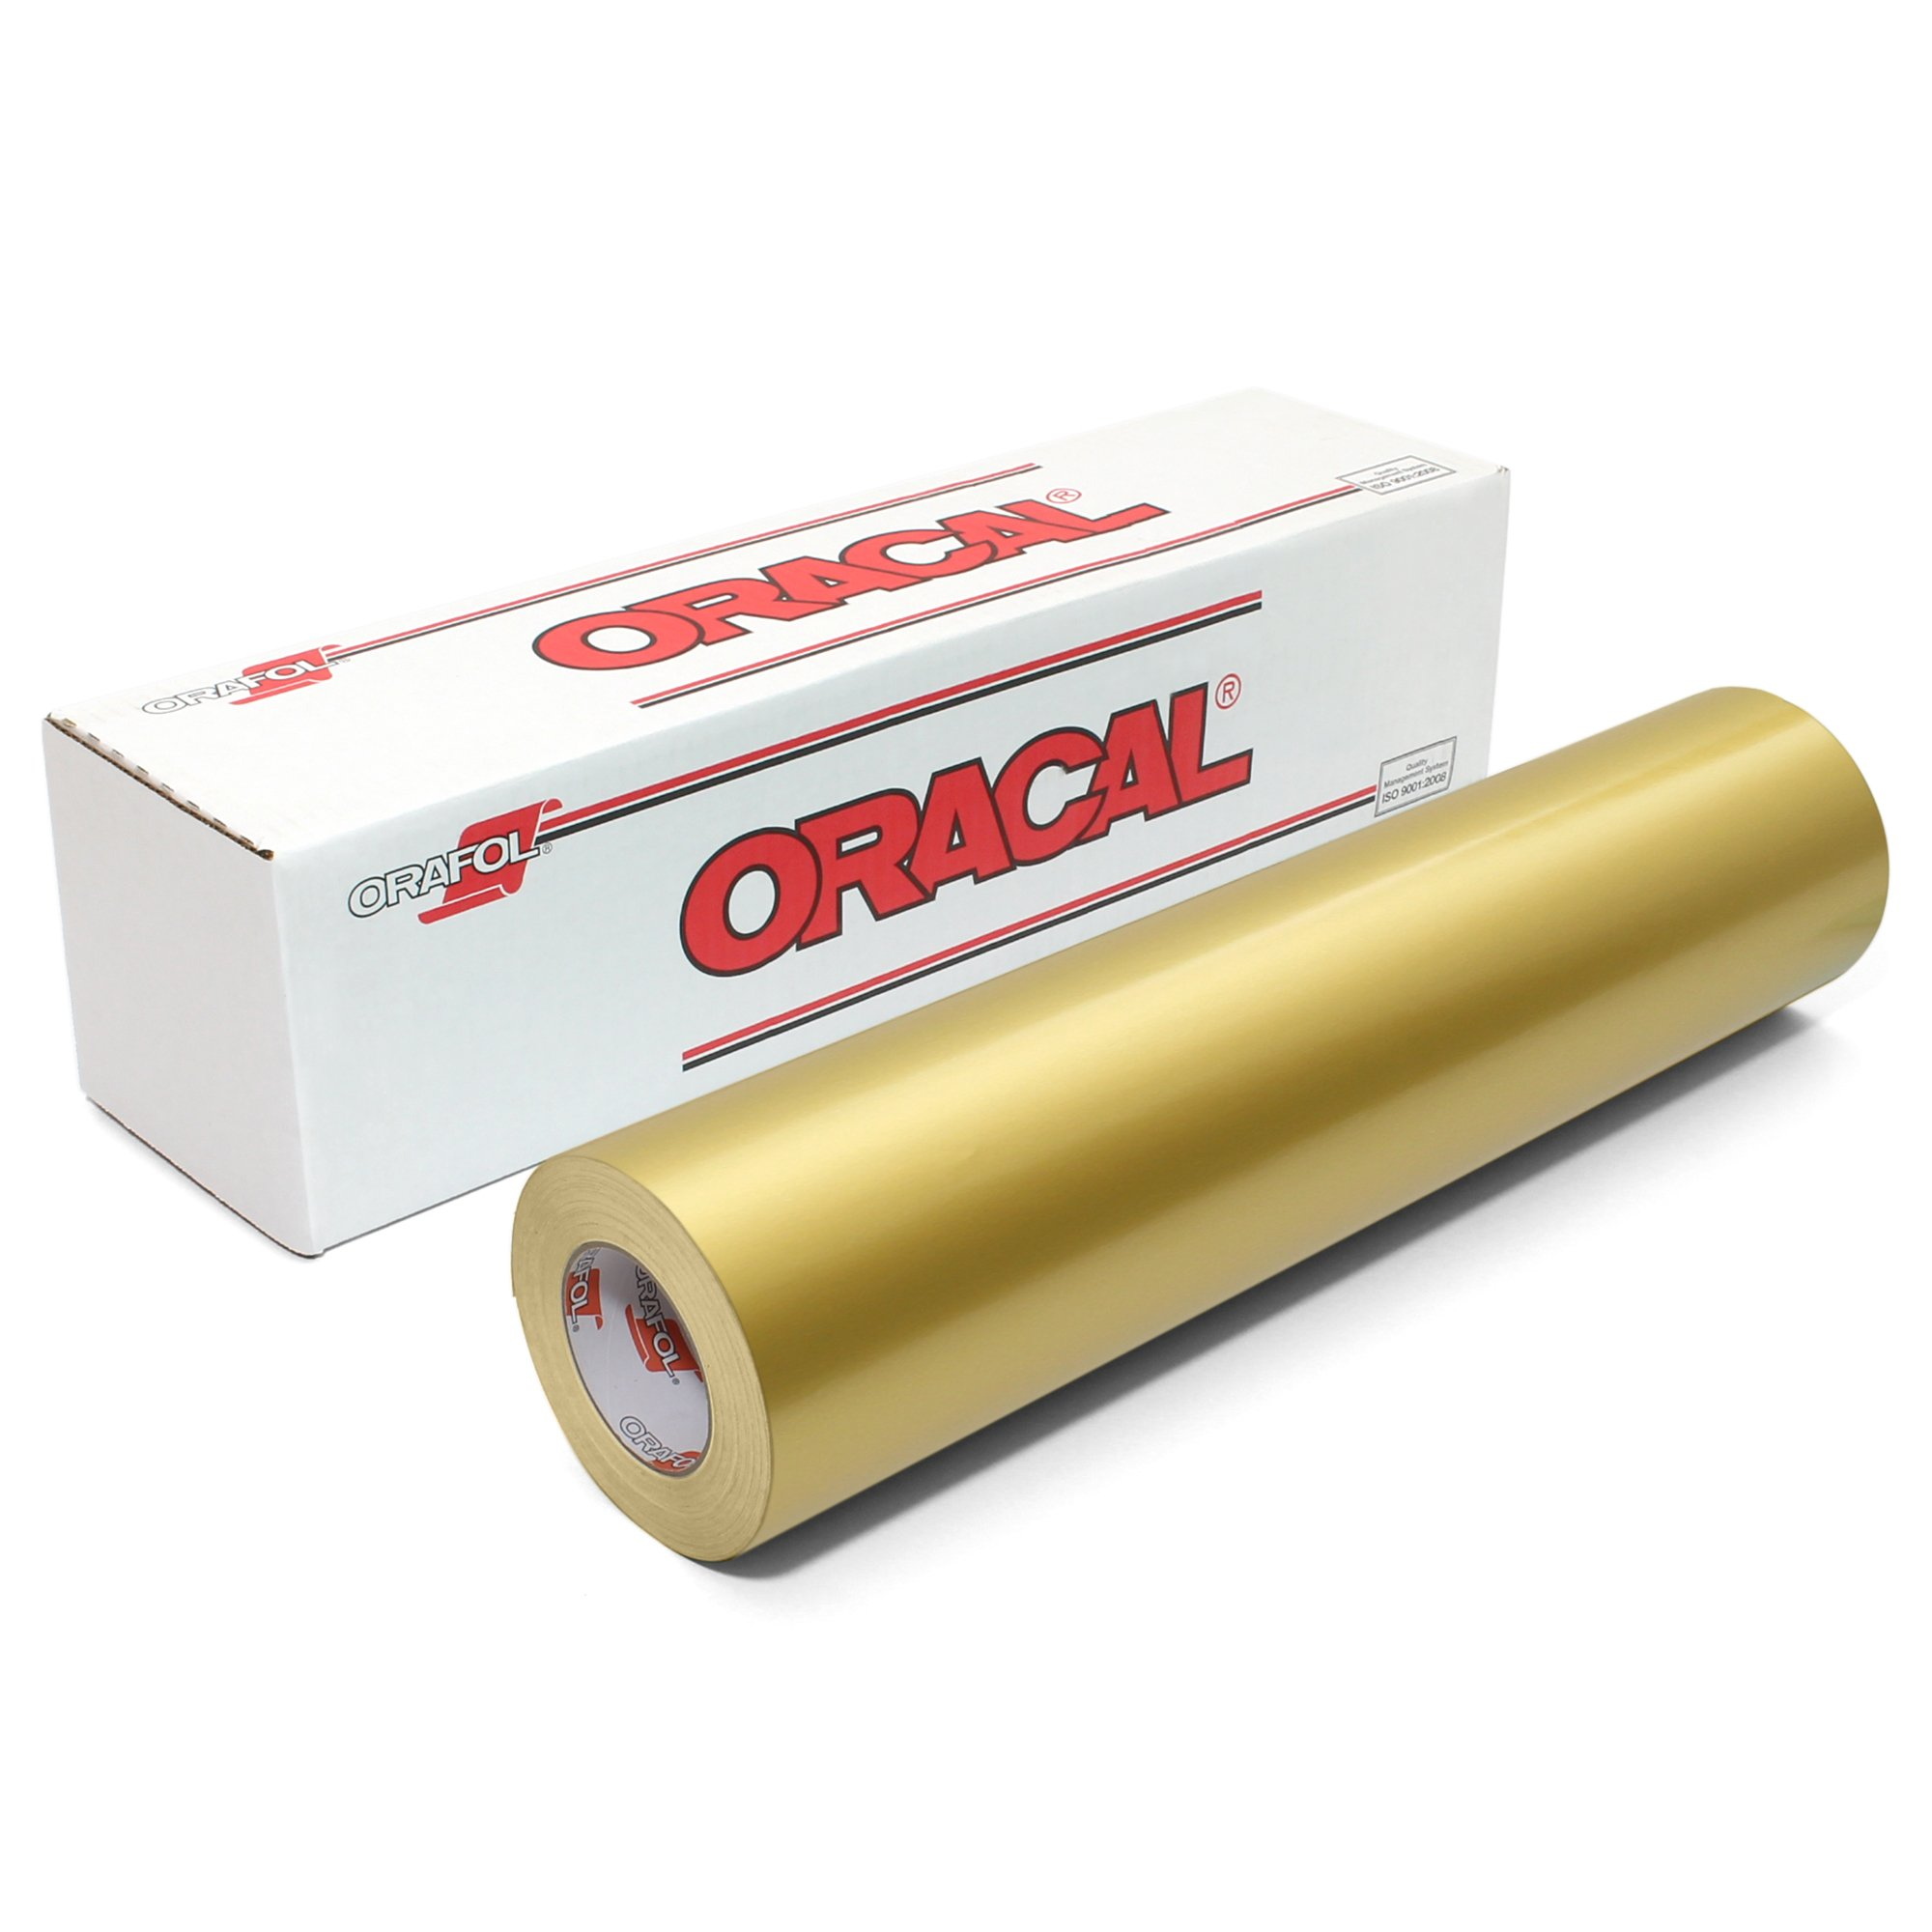 Oracal 651 Glossy Vinyl Roll 24 Inches by 150 Feet - Gold (metallic)